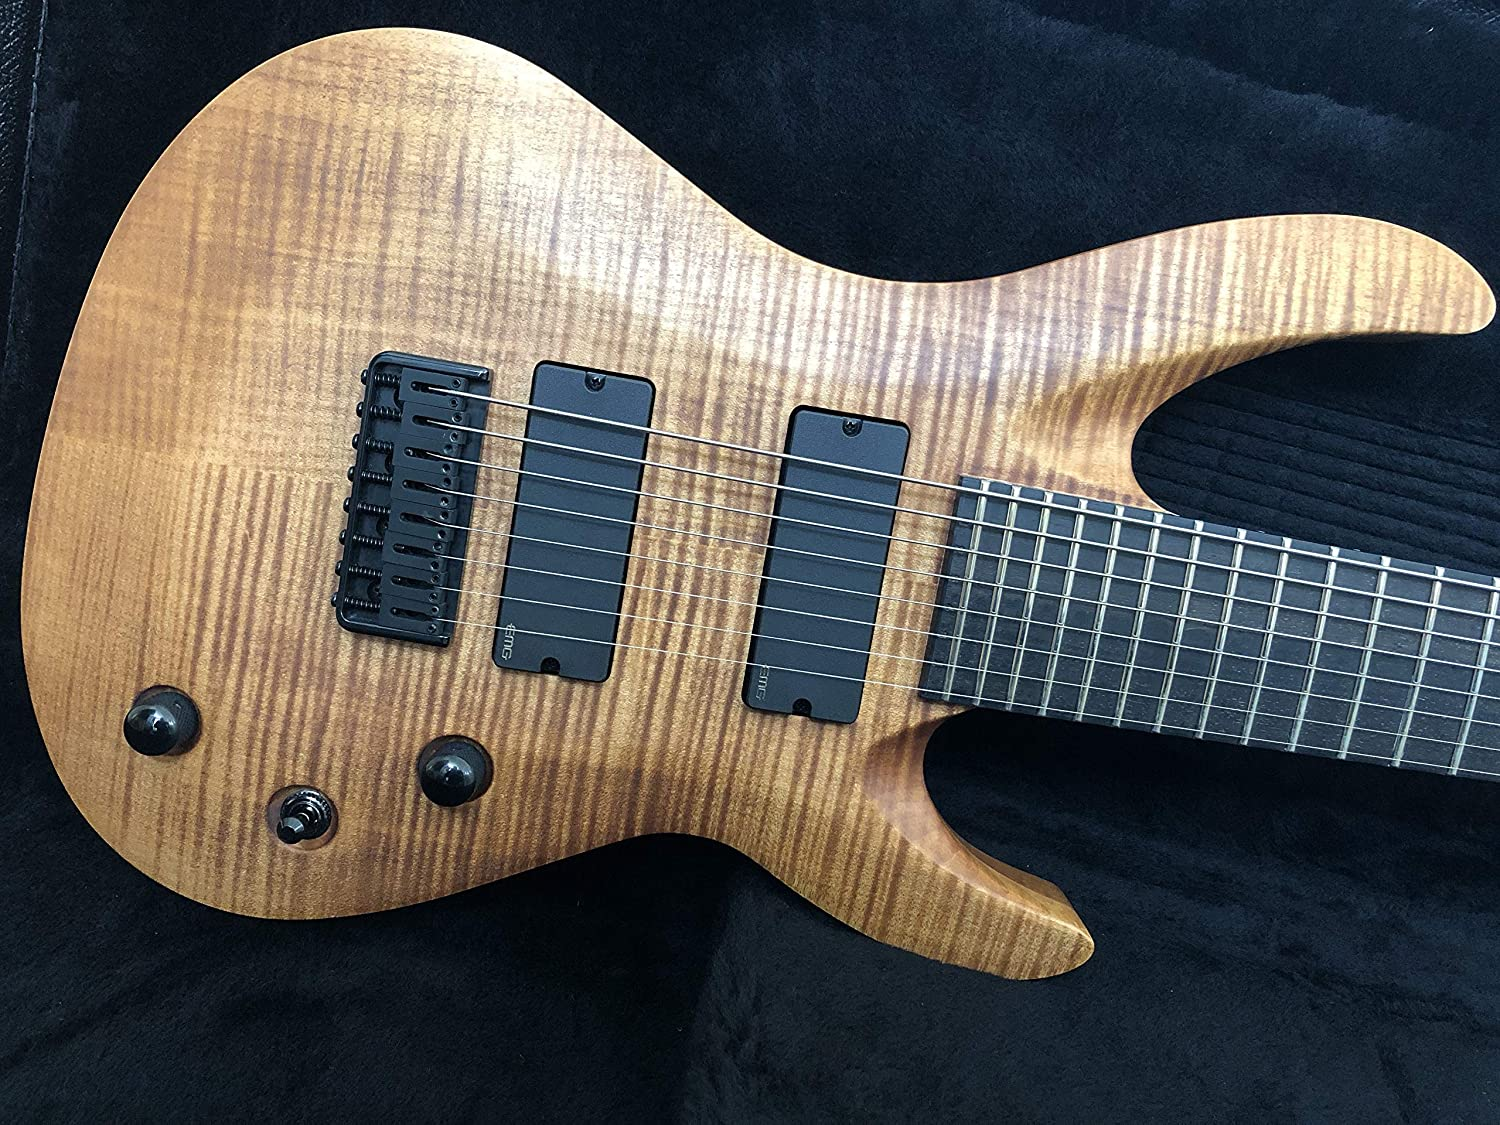 Jackson USA Select Series B8 Deluxe 8 String   B07NKQR41T